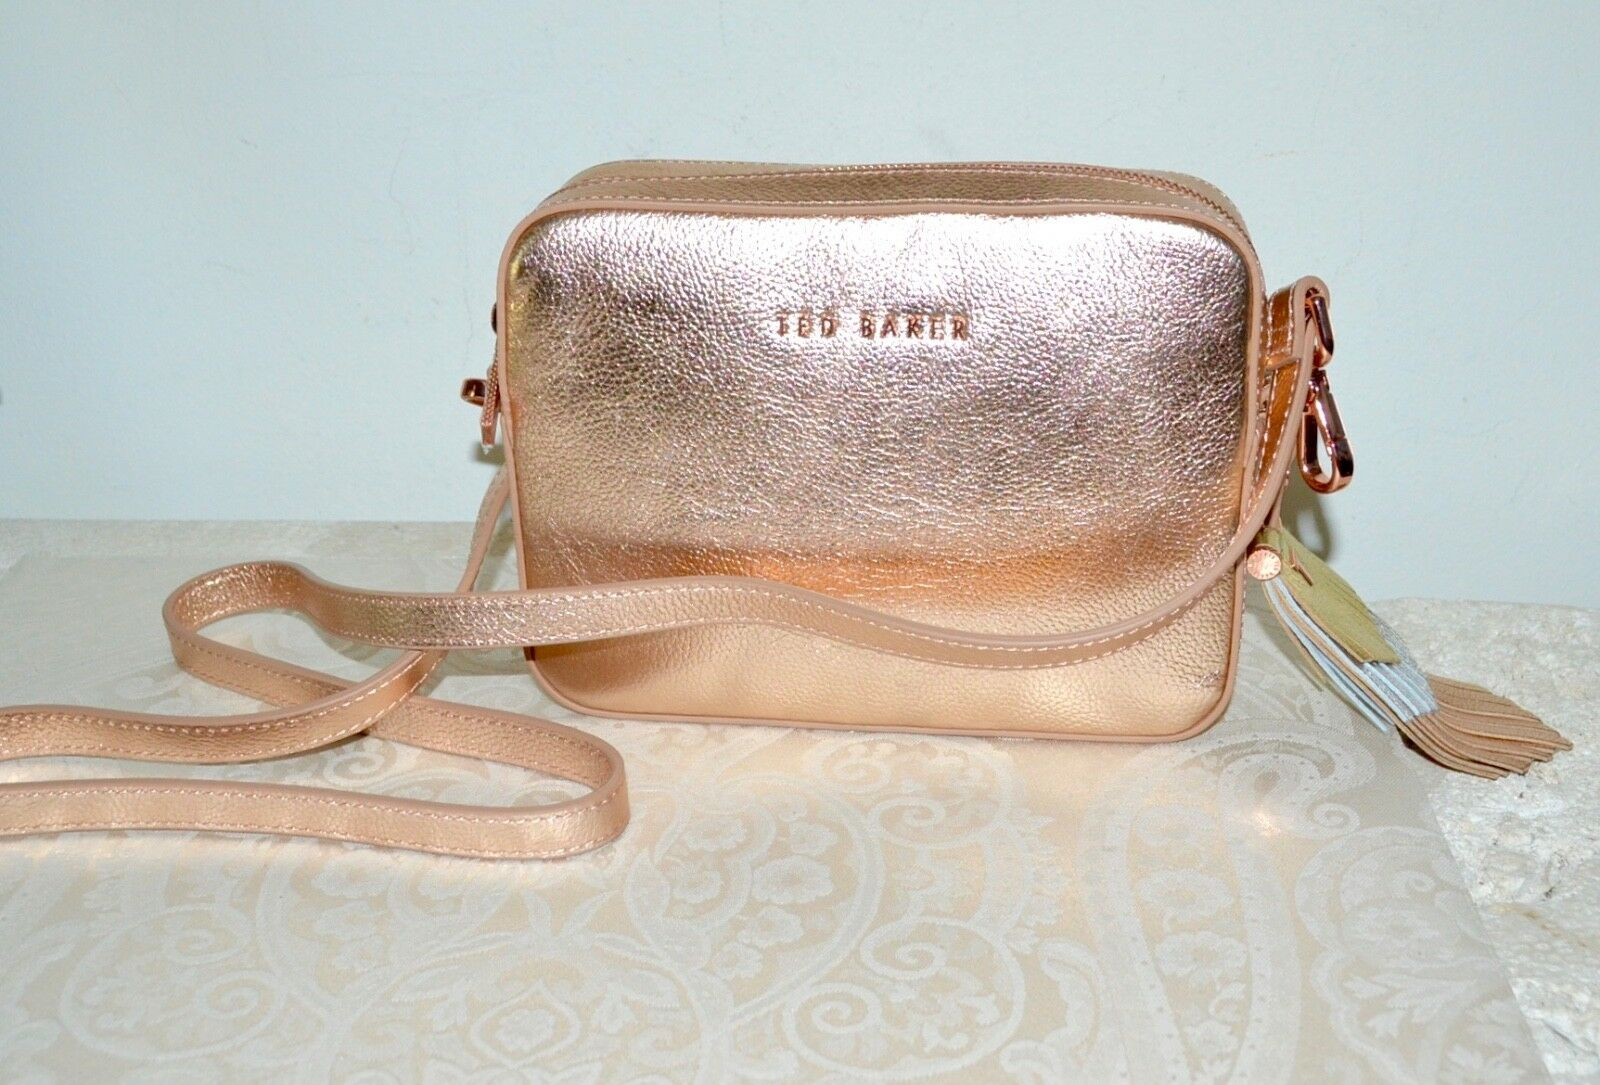 c2e60448e39 Ted Baker London Darwina Tassel Camera Bag Crossbody in Bronze Rose ...